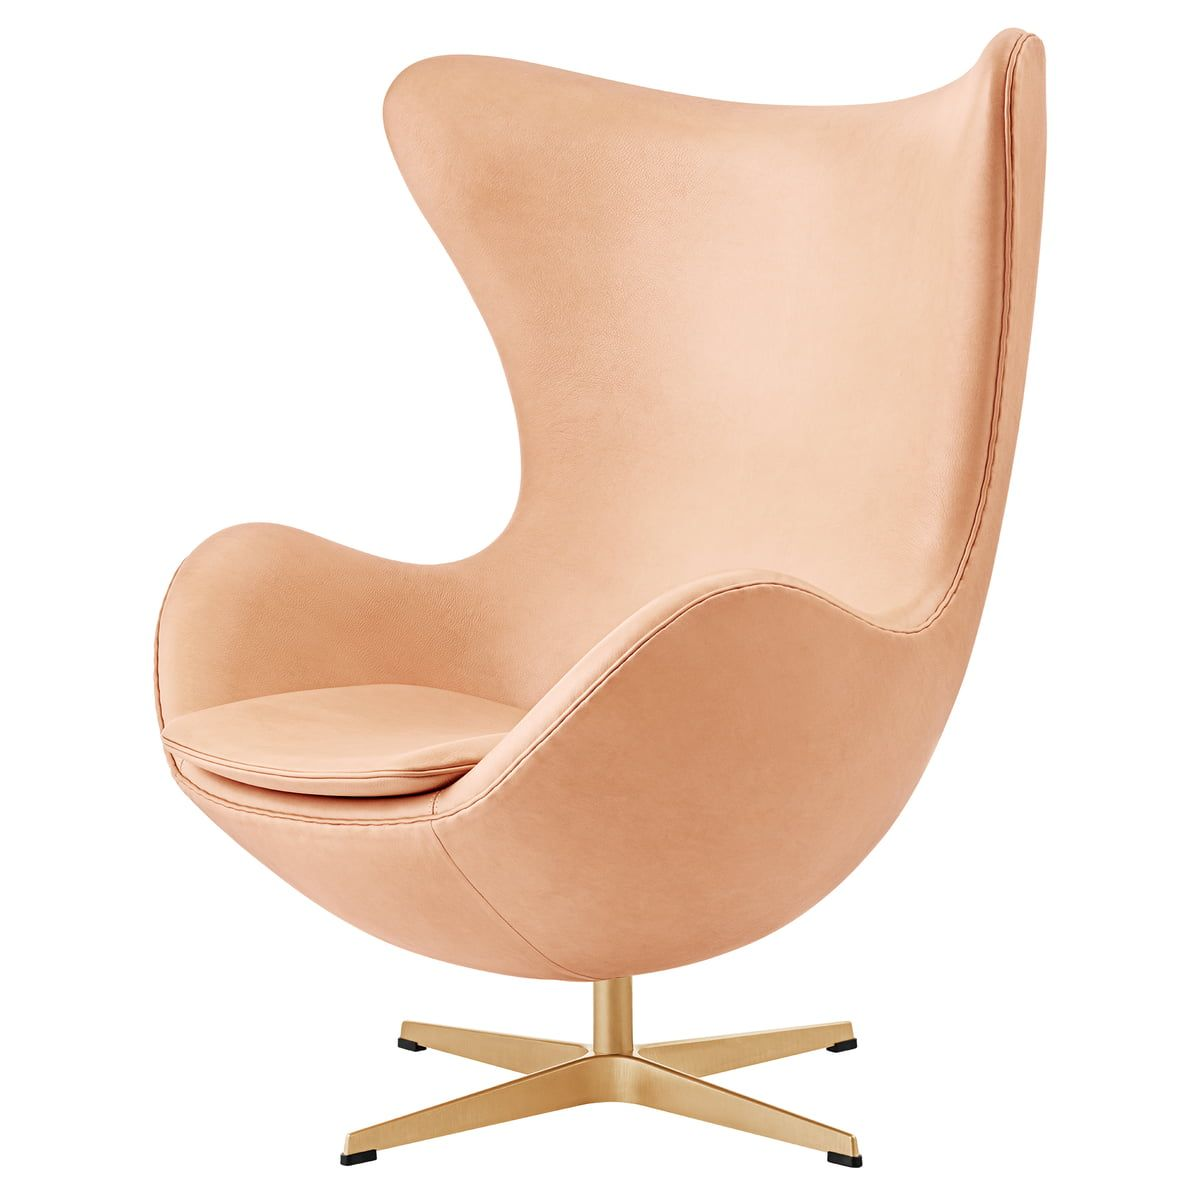 Ei Sessel Egg Lounge Sessel Orange Egg Chair Kaufen Ei Sessel Online Leder